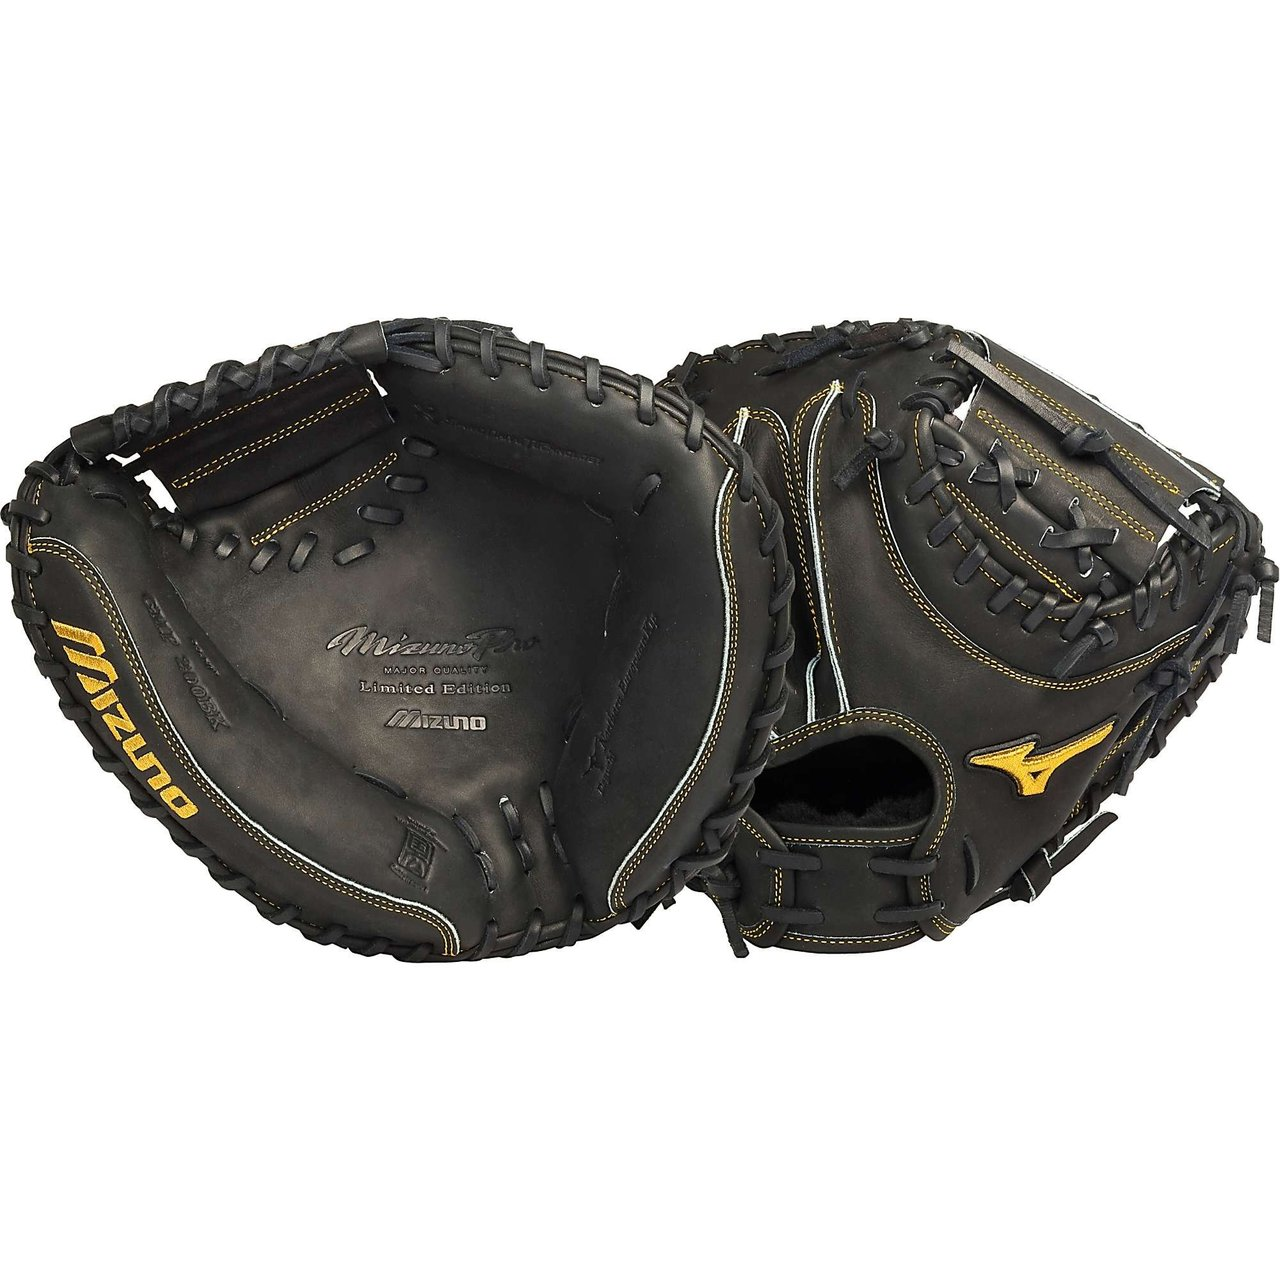 mizuno-pro-gmp200bk-black-limited-edition-catchers-mitt-33-5-right-handed-throw GMP200BK-Right Handed Throw Mizuno 041969460429 Mizuno Catchers mitt. Off-season conditioning program - have Mizuno get your